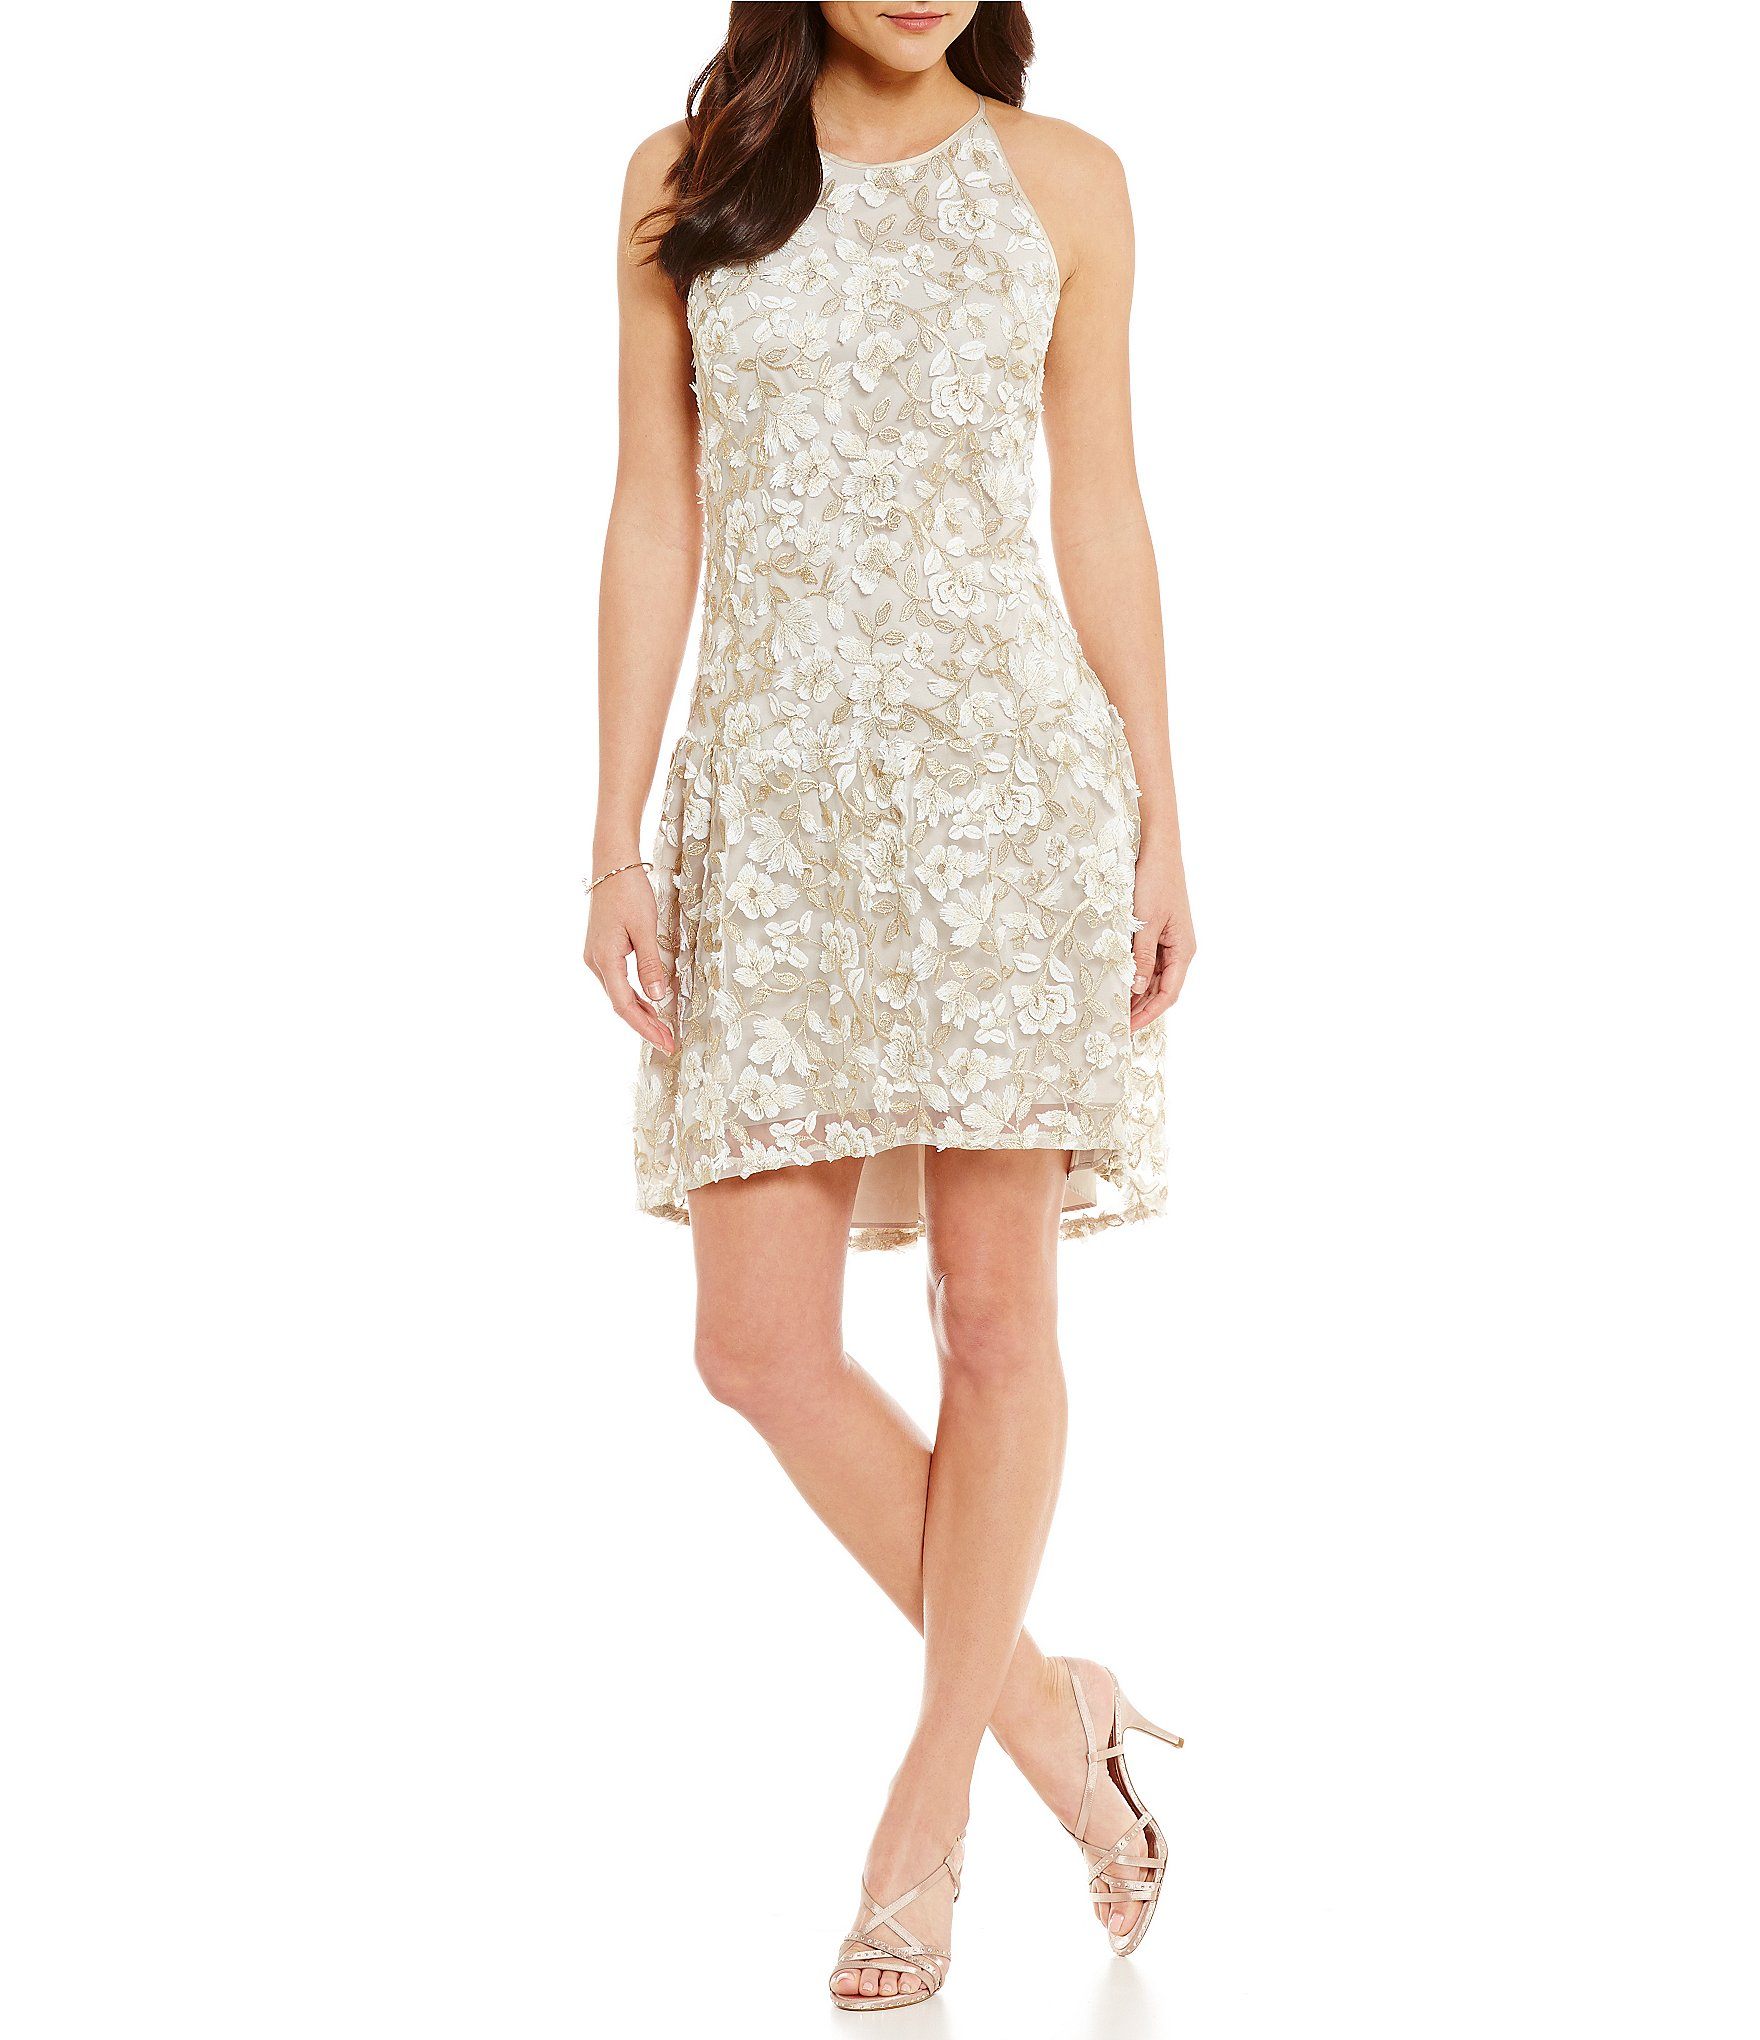 Adrianna Papell Liliana 3D Metallic Lace Hi-Low Dress | Dillards